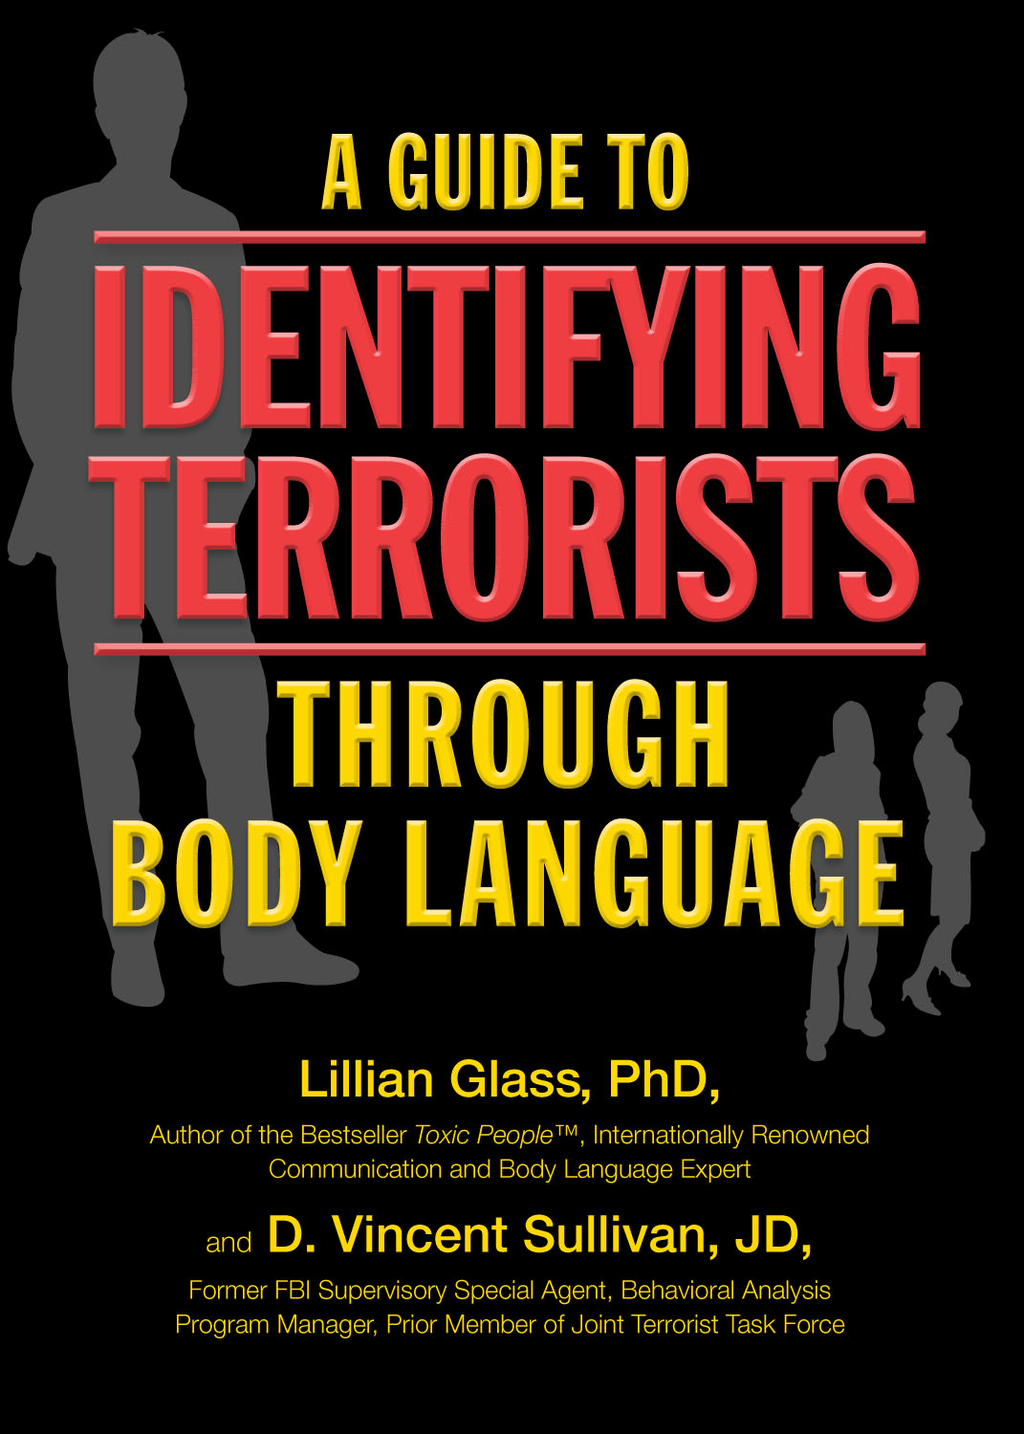 A Guide to Identifying Terrorists Through Body Language By: D. Vincent Sullivan JD,Lillian Glass PhD